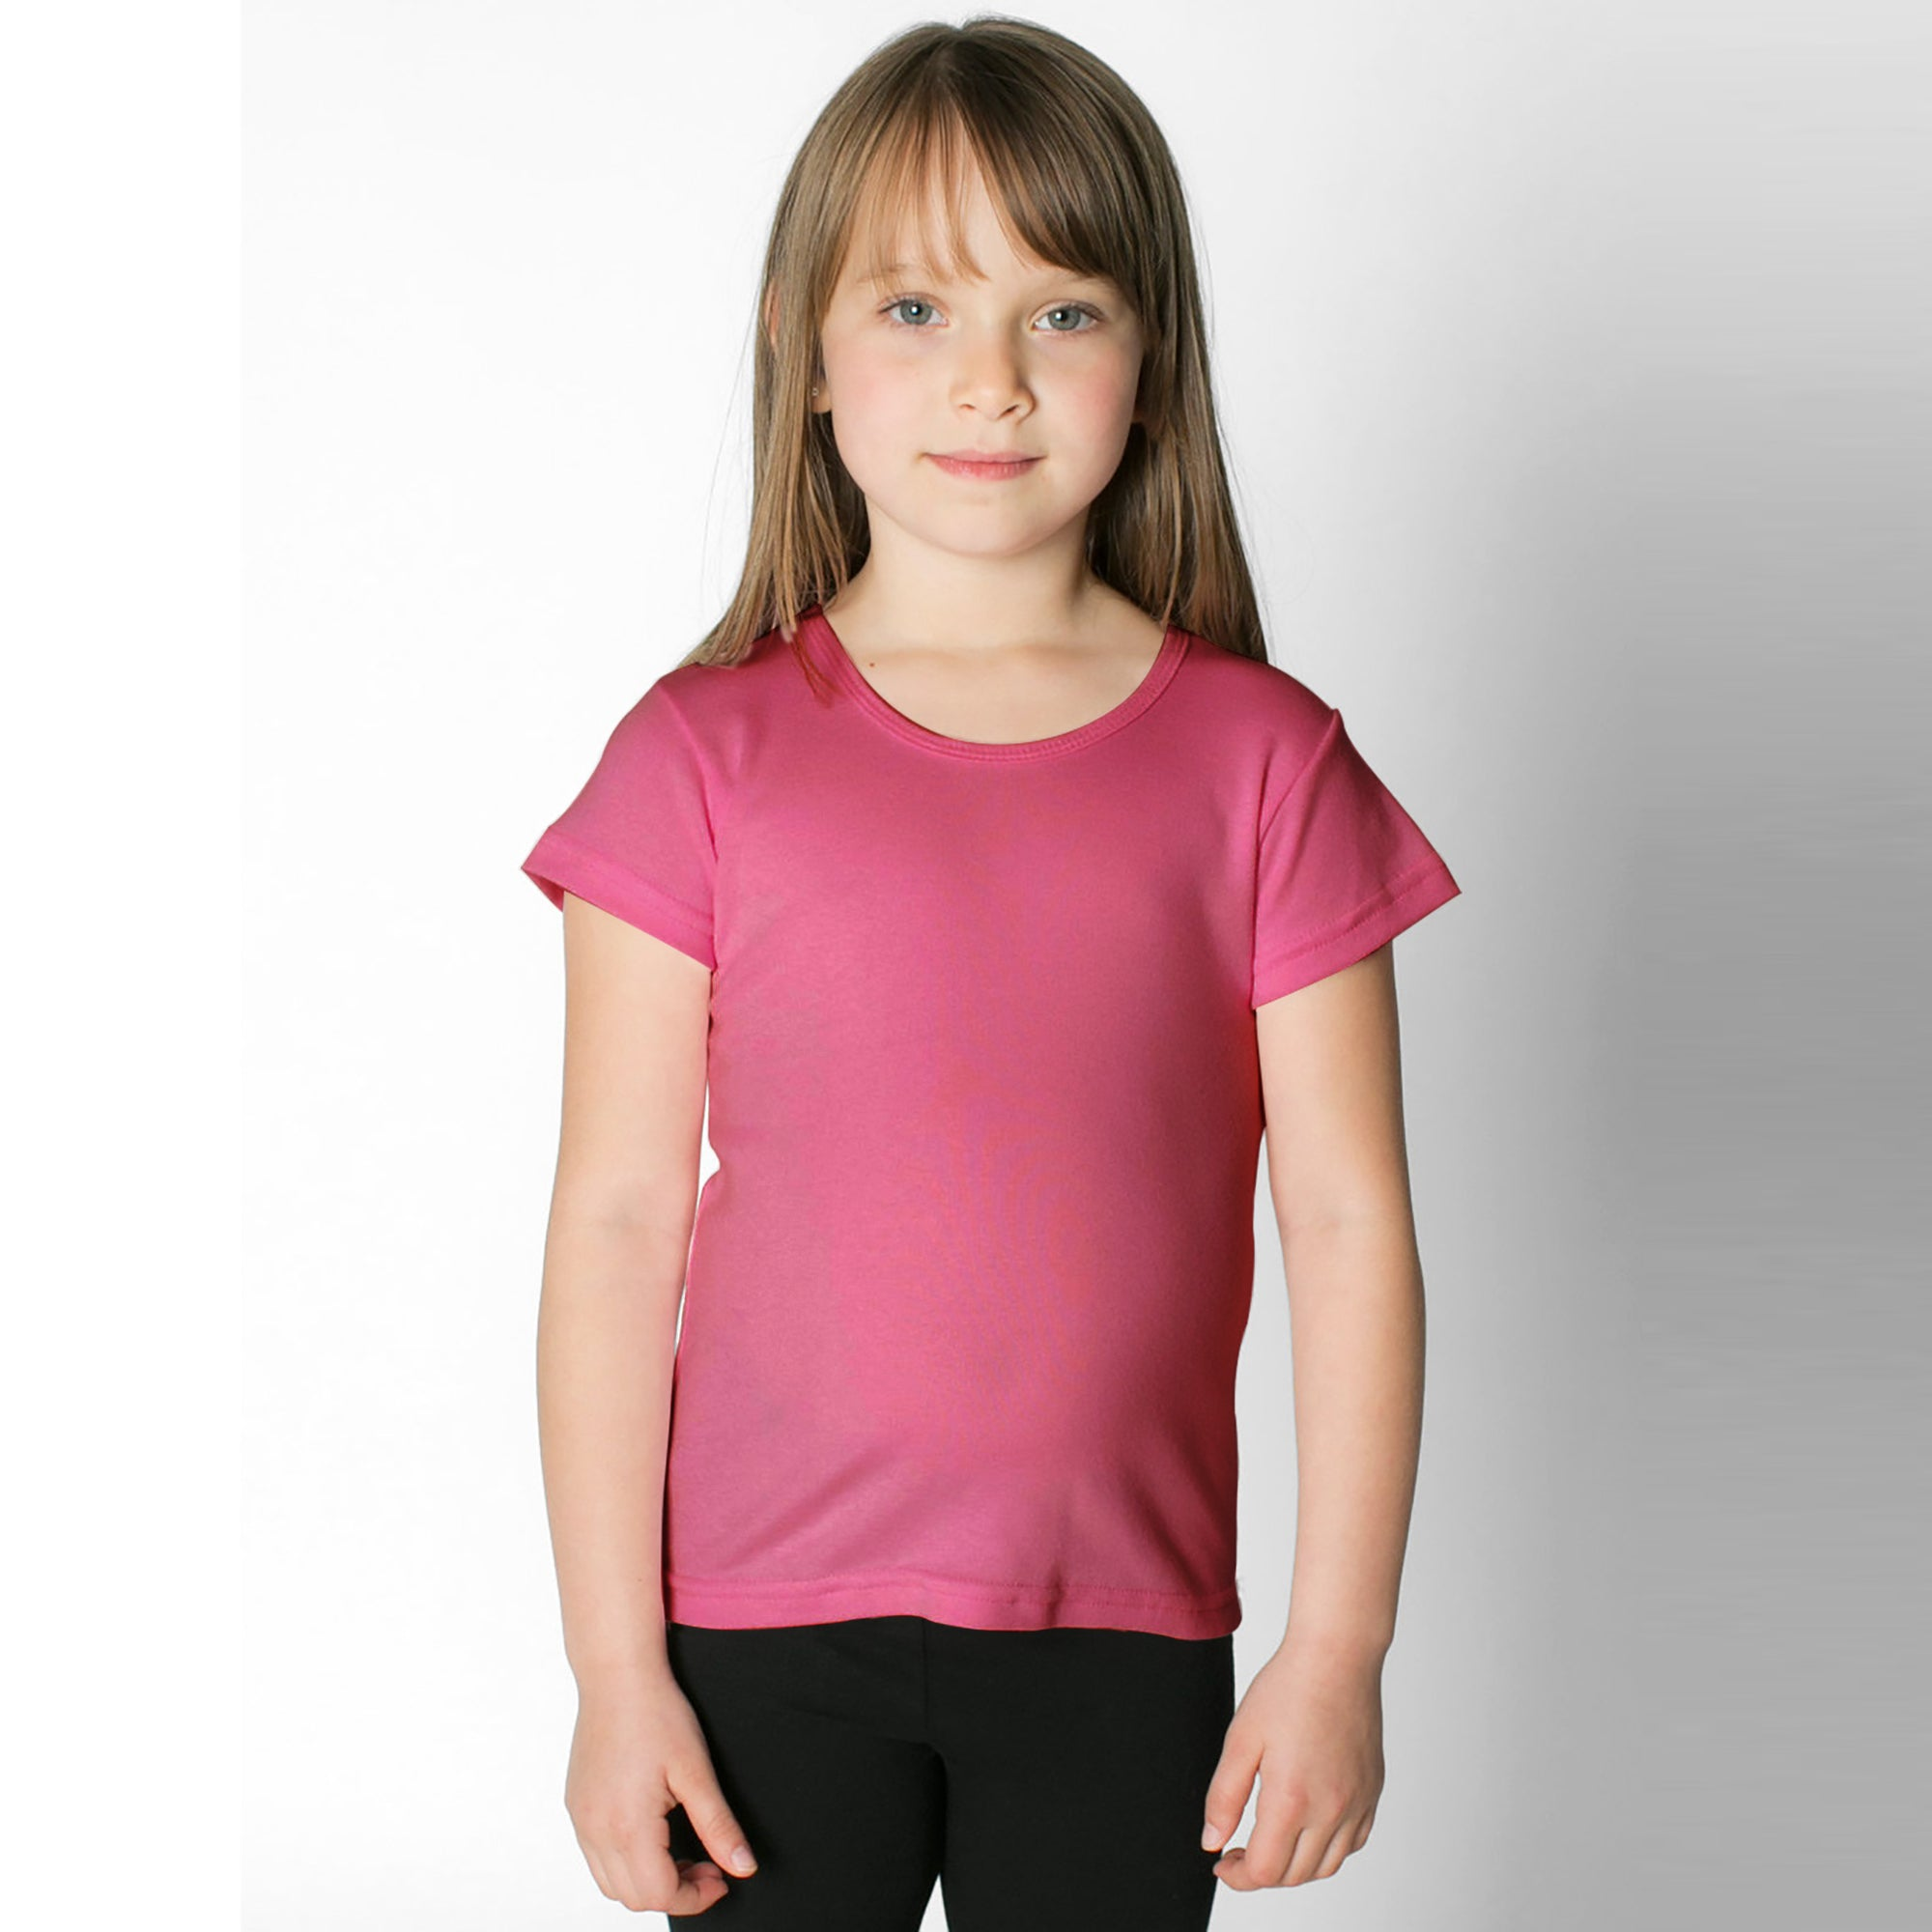 Curious Soul Crew Neck Single Jersey Tee Shirt For Kids-Pink-SP2840